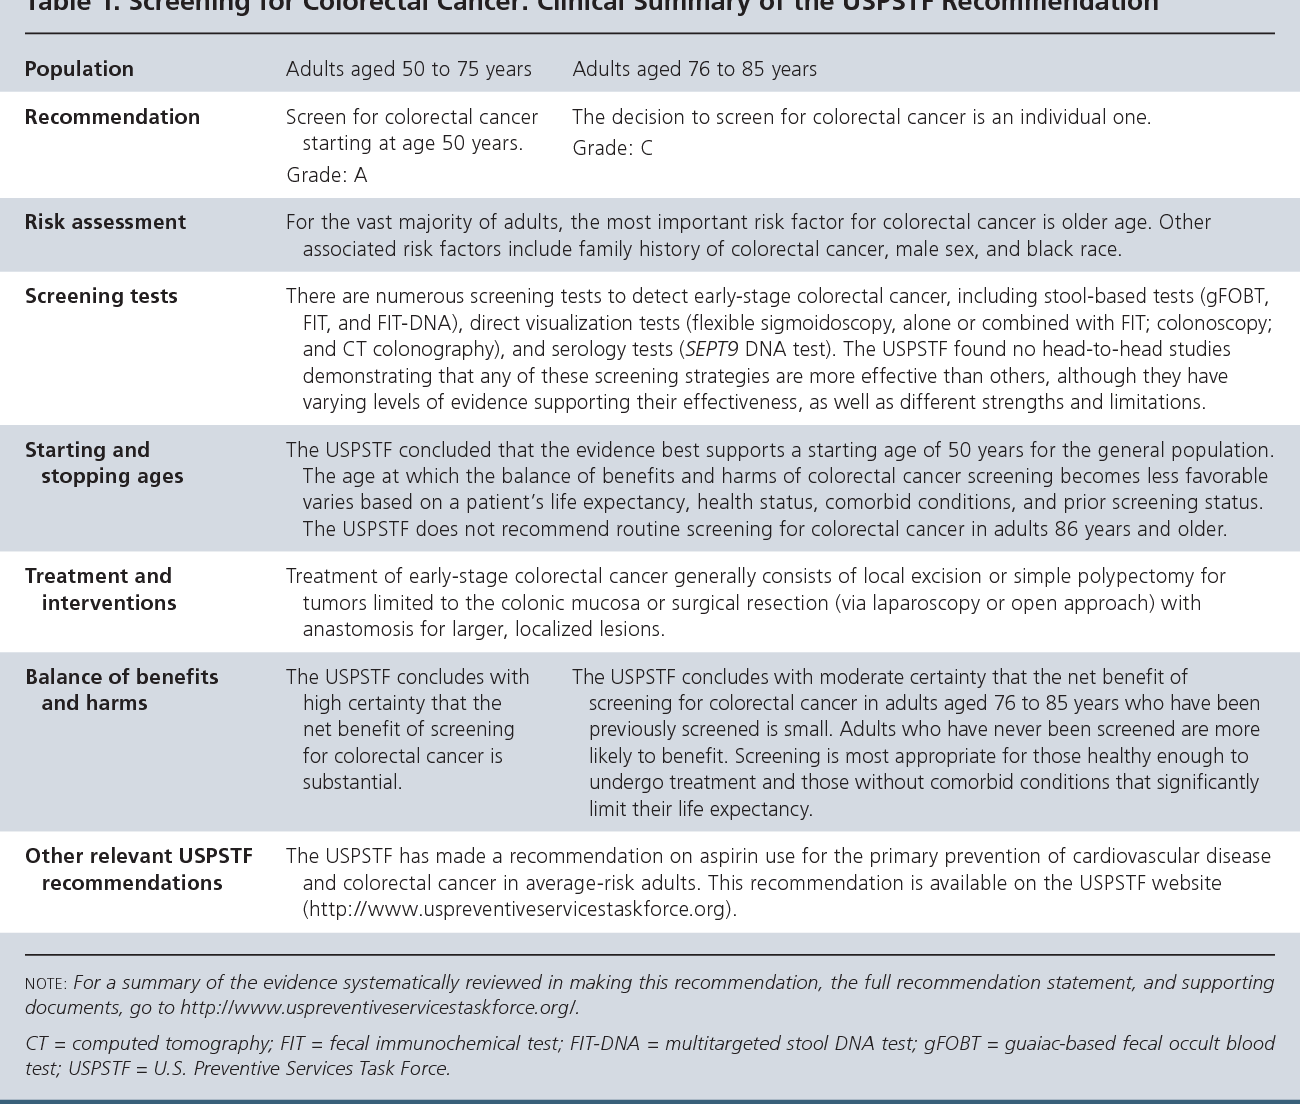 Pdf Screening For Colorectal Cancer Recommendation Statement Semantic Scholar